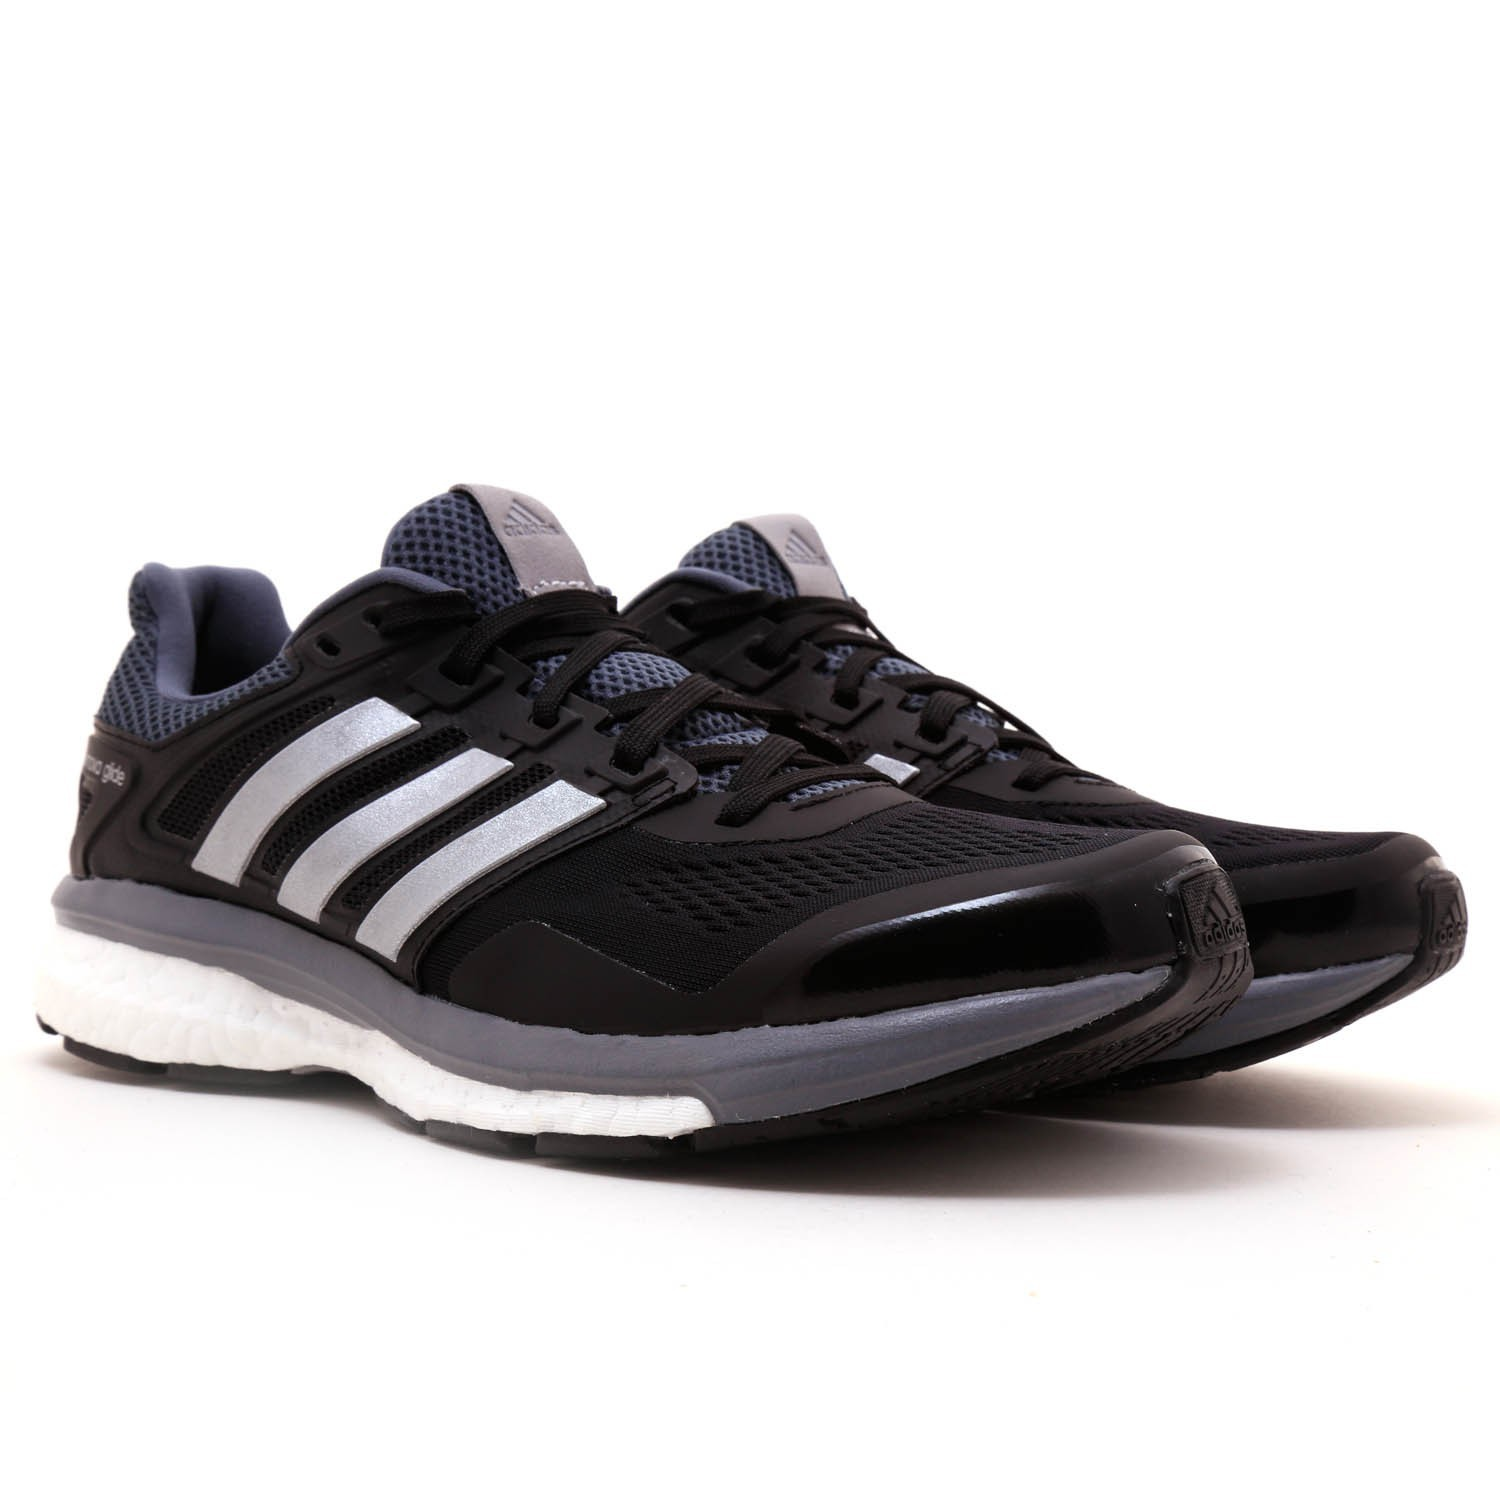 adidas supernova glide boost outlet. Black Bedroom Furniture Sets. Home Design Ideas